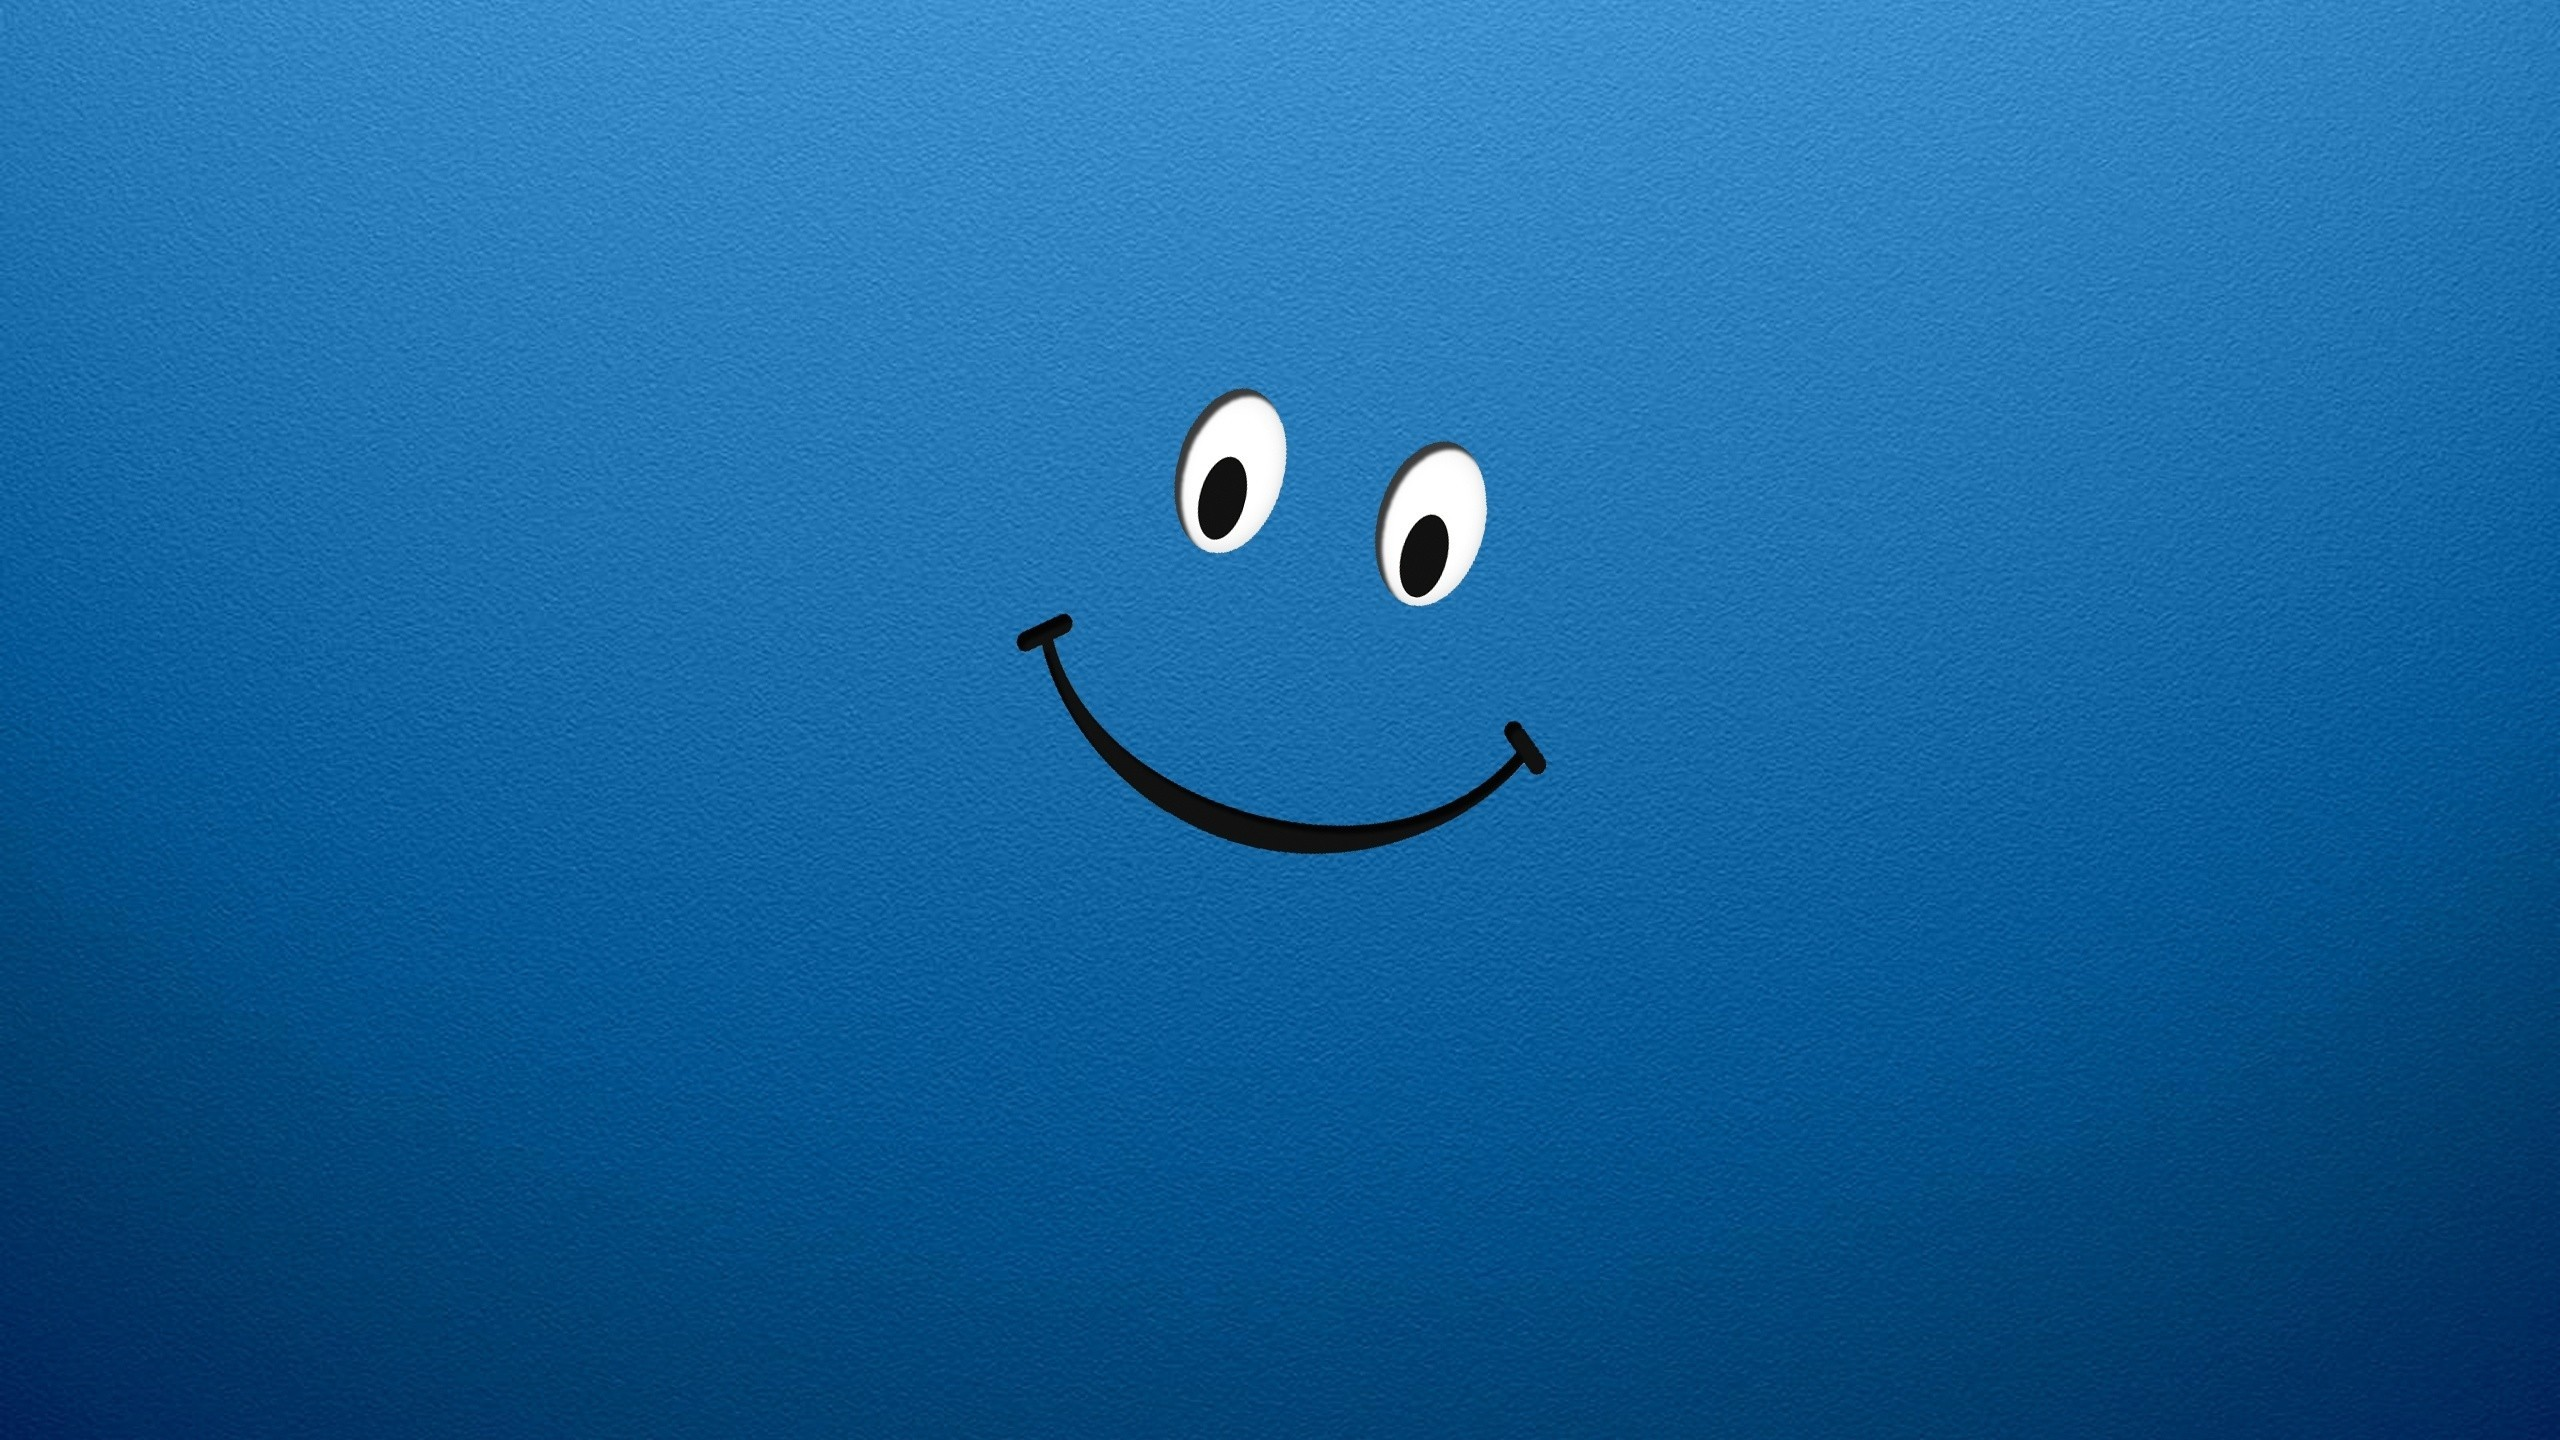 smiley face smiling blue HD Wallpaper